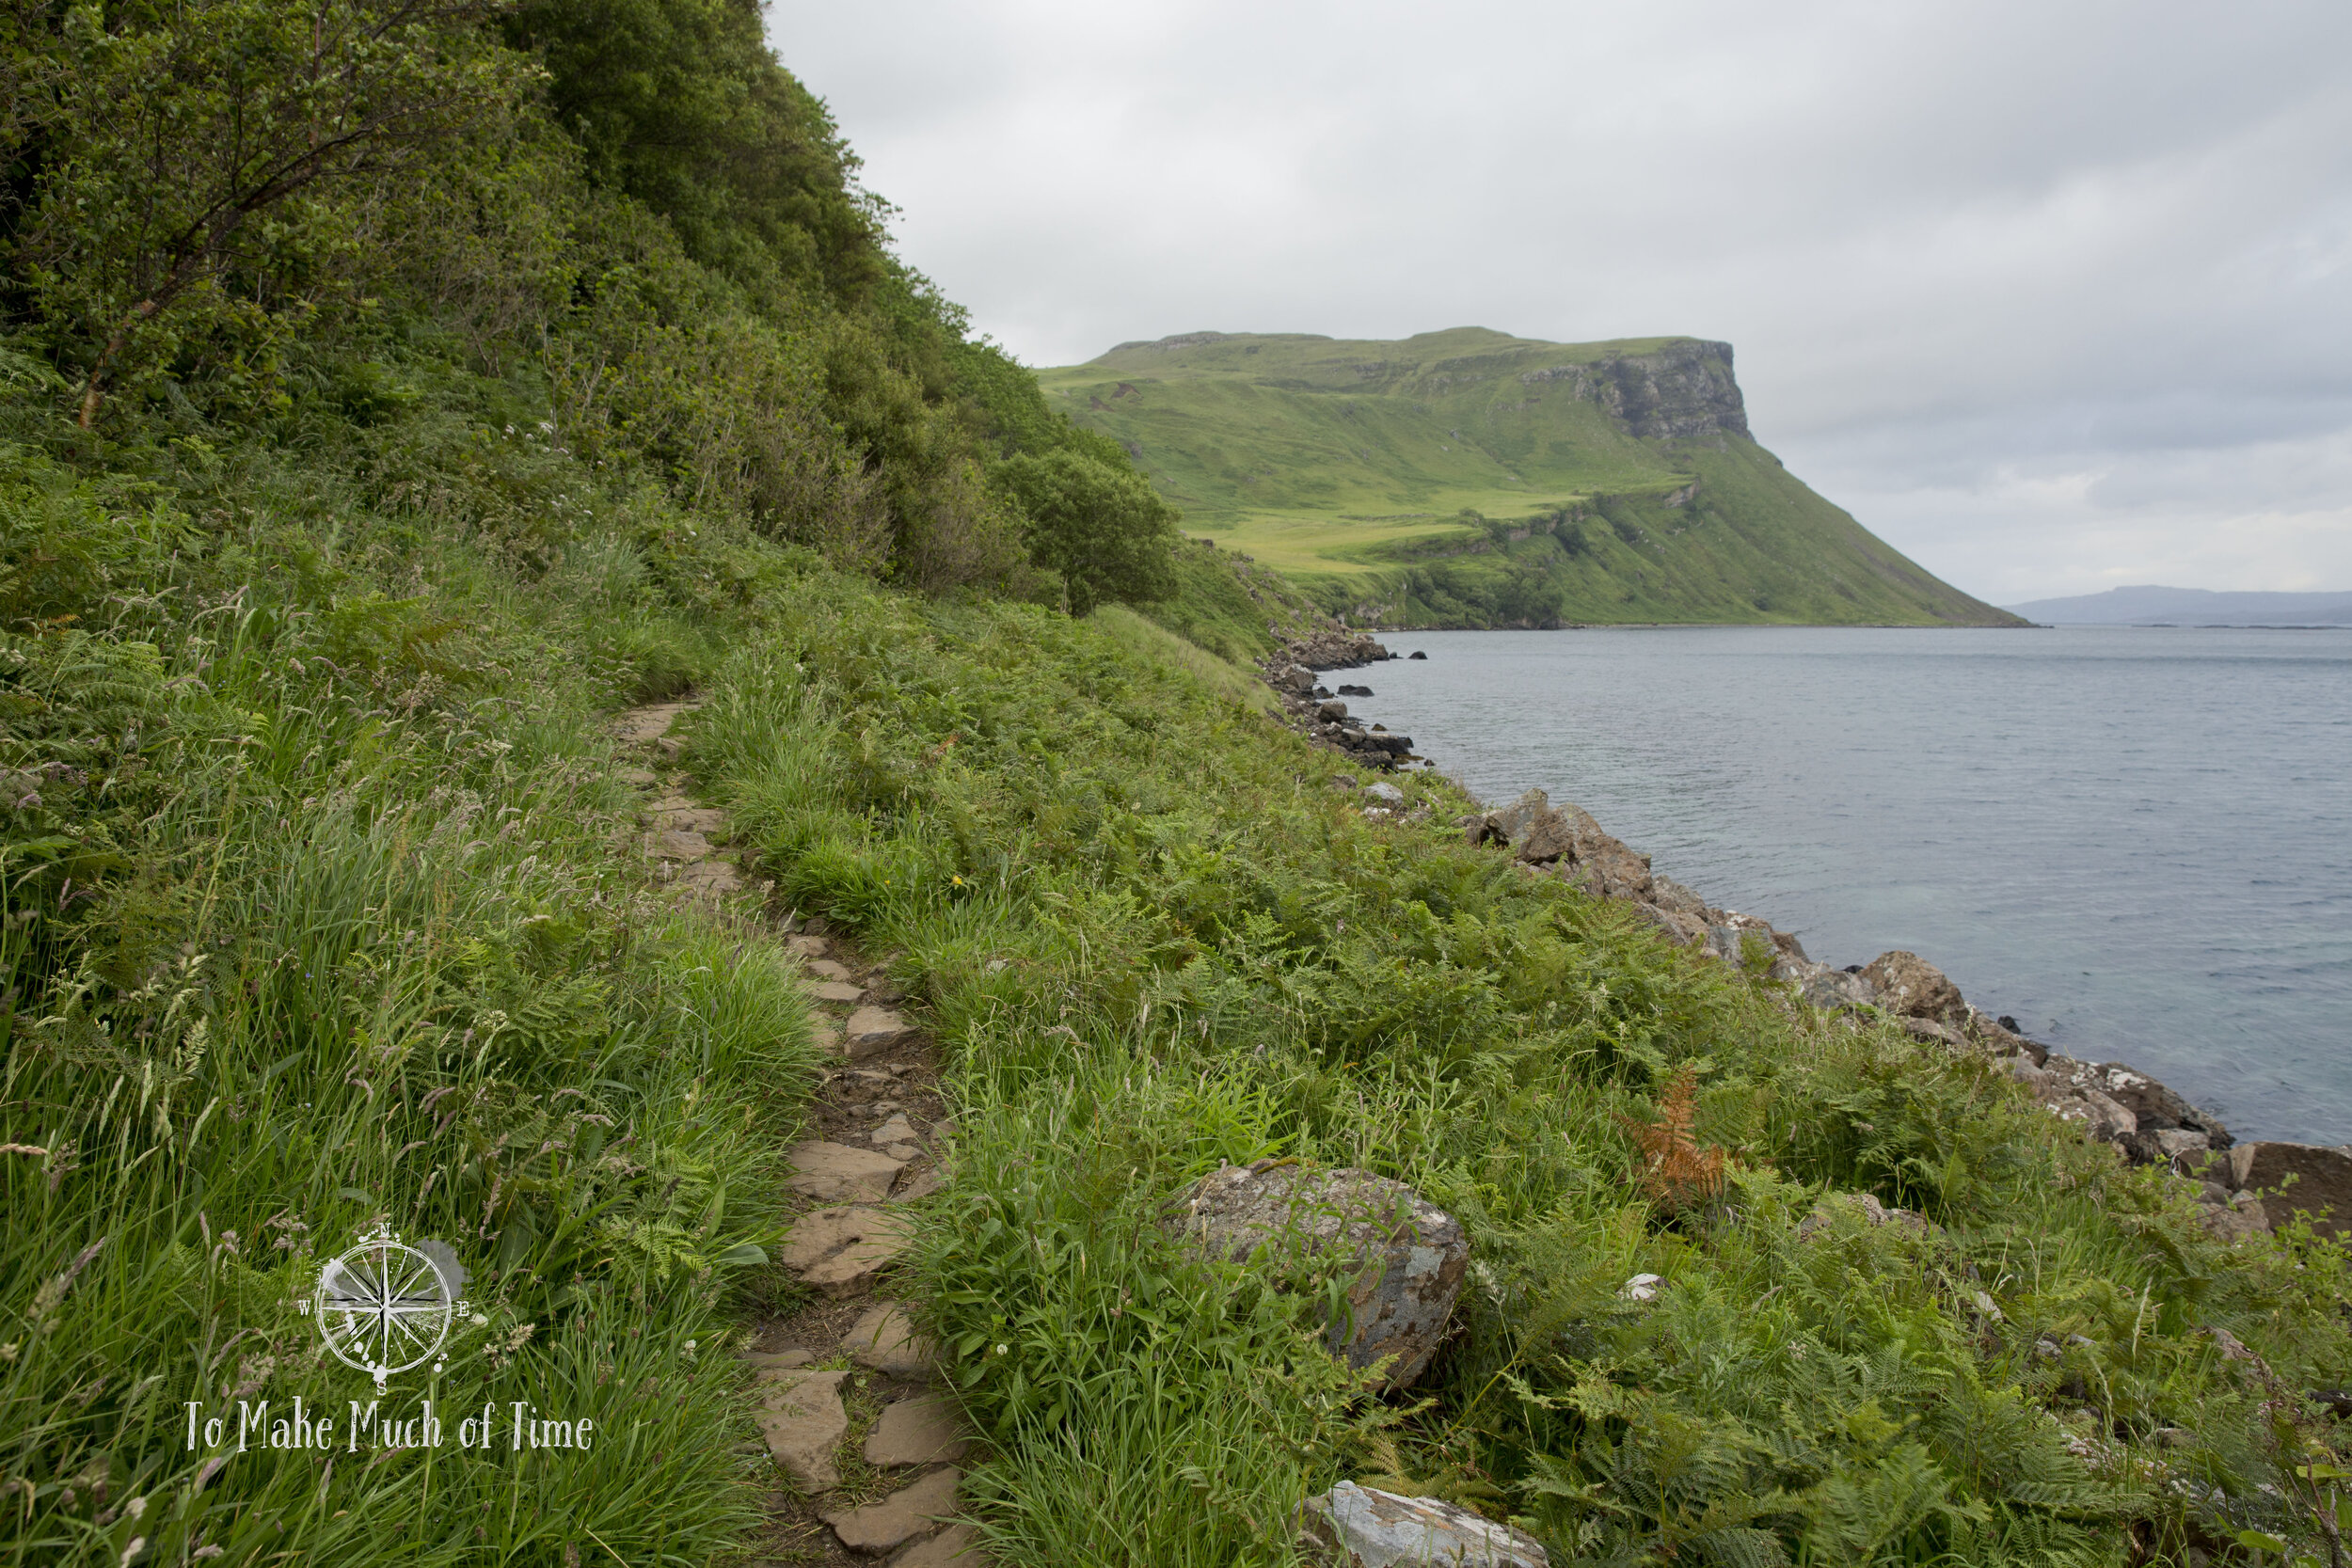 This wonderful hike right outside the town of Portree on the Isle of Skye leads you around Ben Tianavaig (unseen mountain to the left) and provides excellent views and photo opportunities.